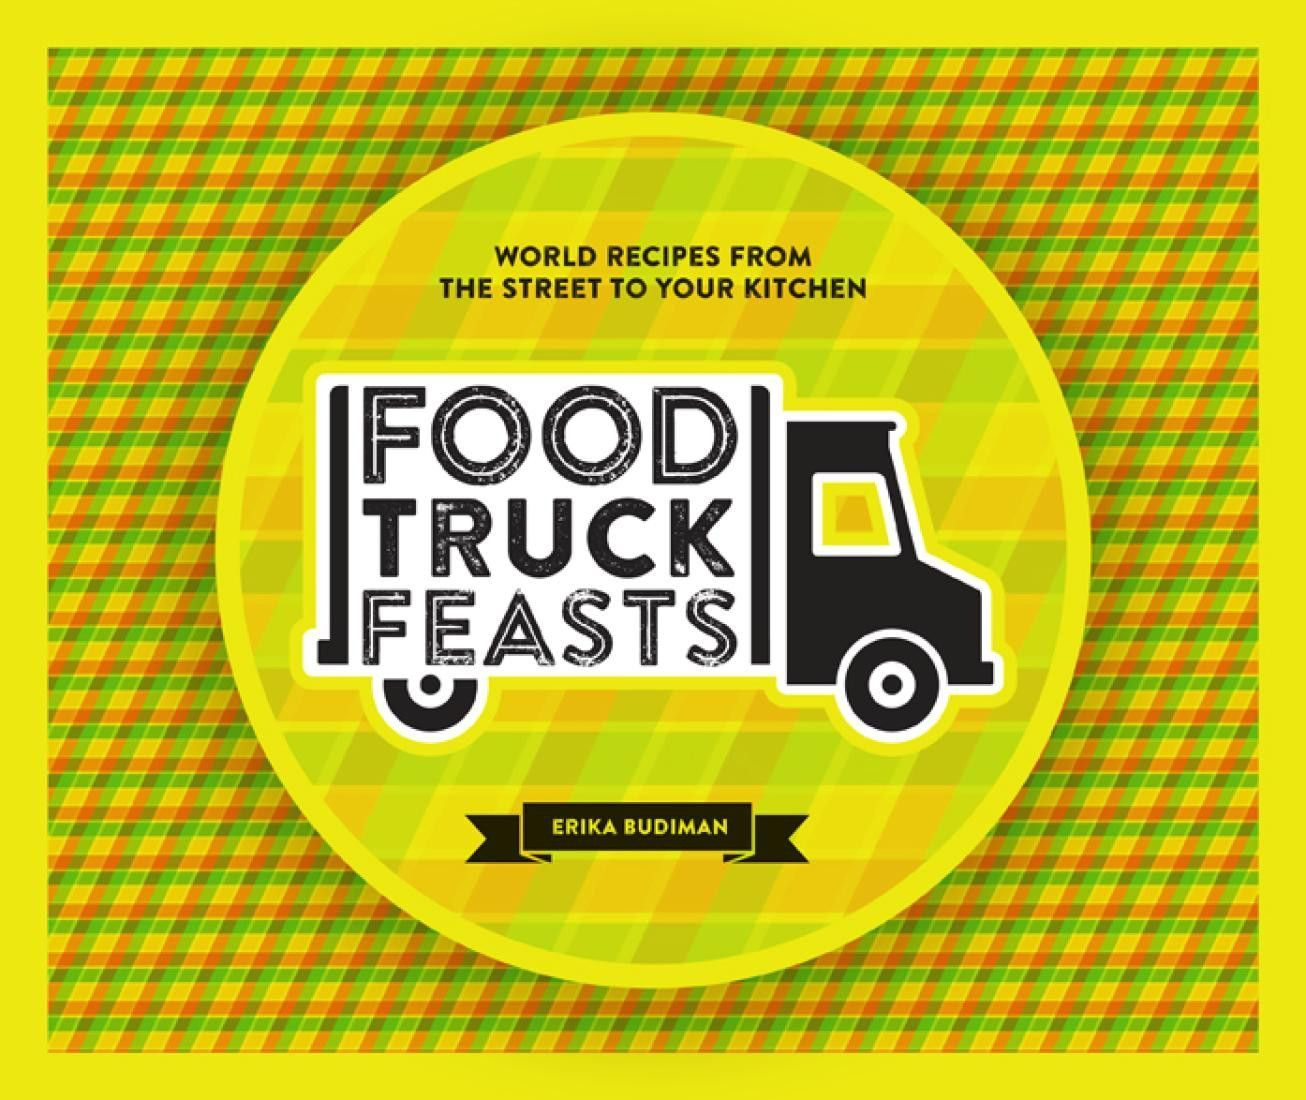 Food truck feasts world recipes from the street to your kitchen by food truck feasts world recipes from the street to your kitchen by hardie grant publishing forumfinder Choice Image